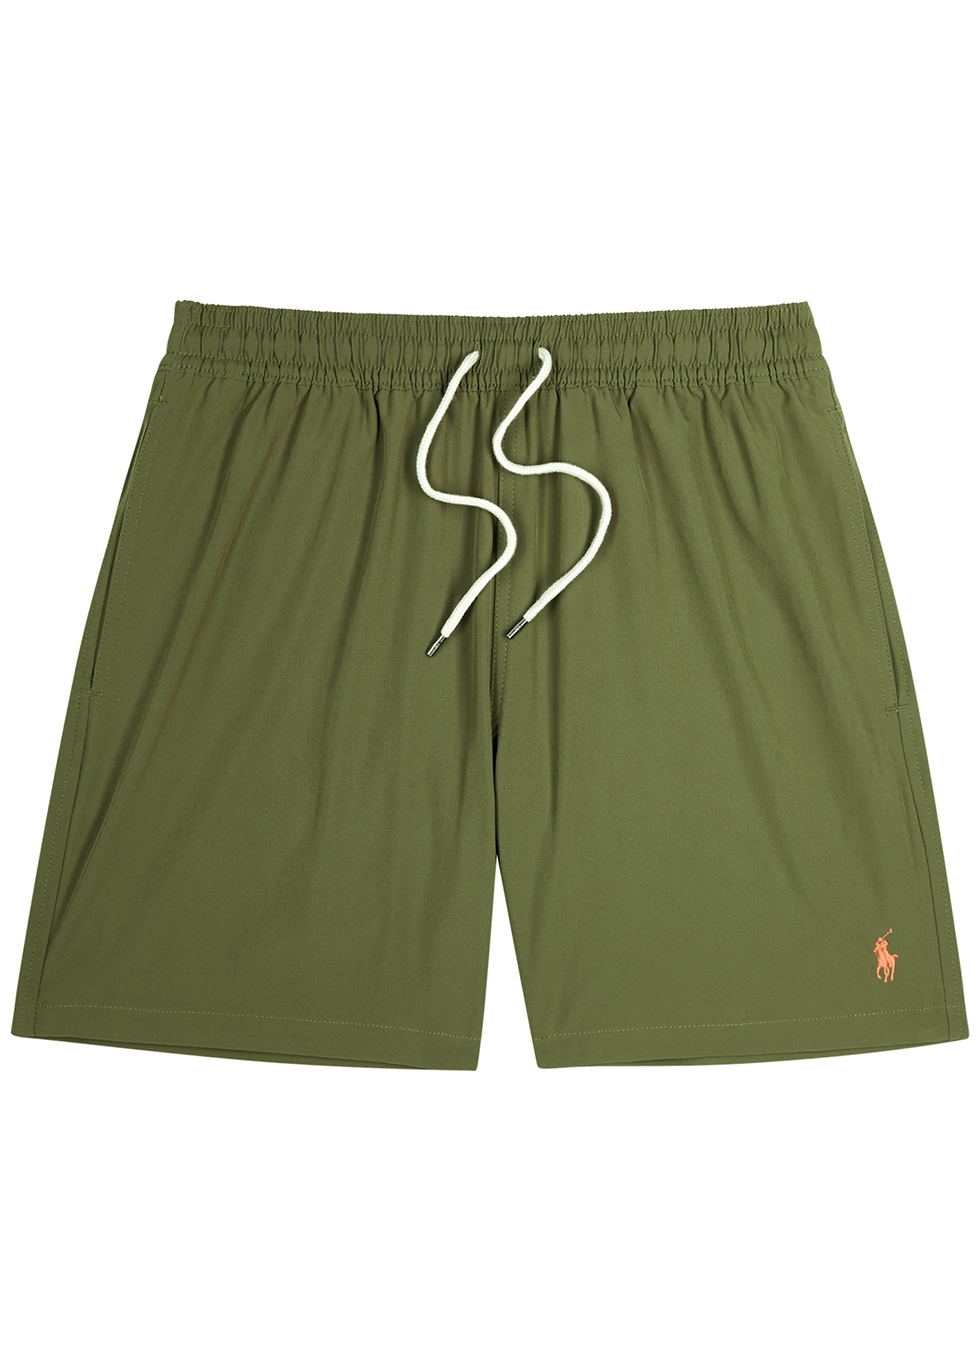 Traveller army green swim shorts